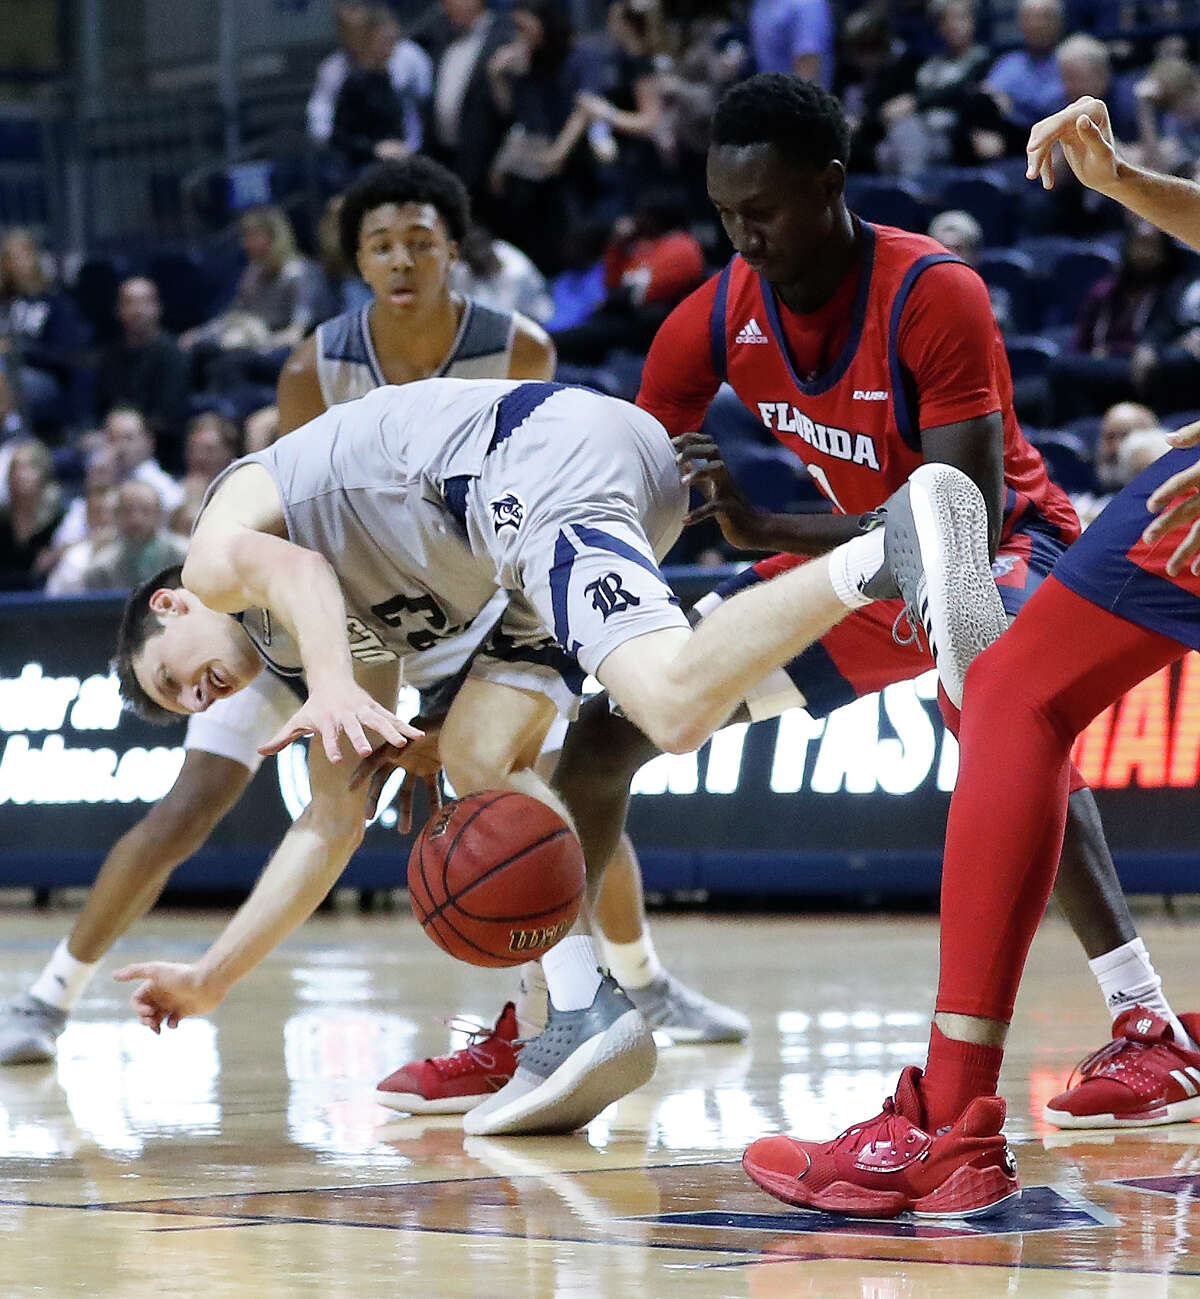 Rice Owls guard Drew Peterson (23) stumbles as he tries to stay in control of the ball against Florida Atlantic Owls forward Madiaw Niang (1) during the first half of an NCAA men's college basketball game at Tudor Fieldhouse Thursday, Jan. 9, 2020, in Houston.